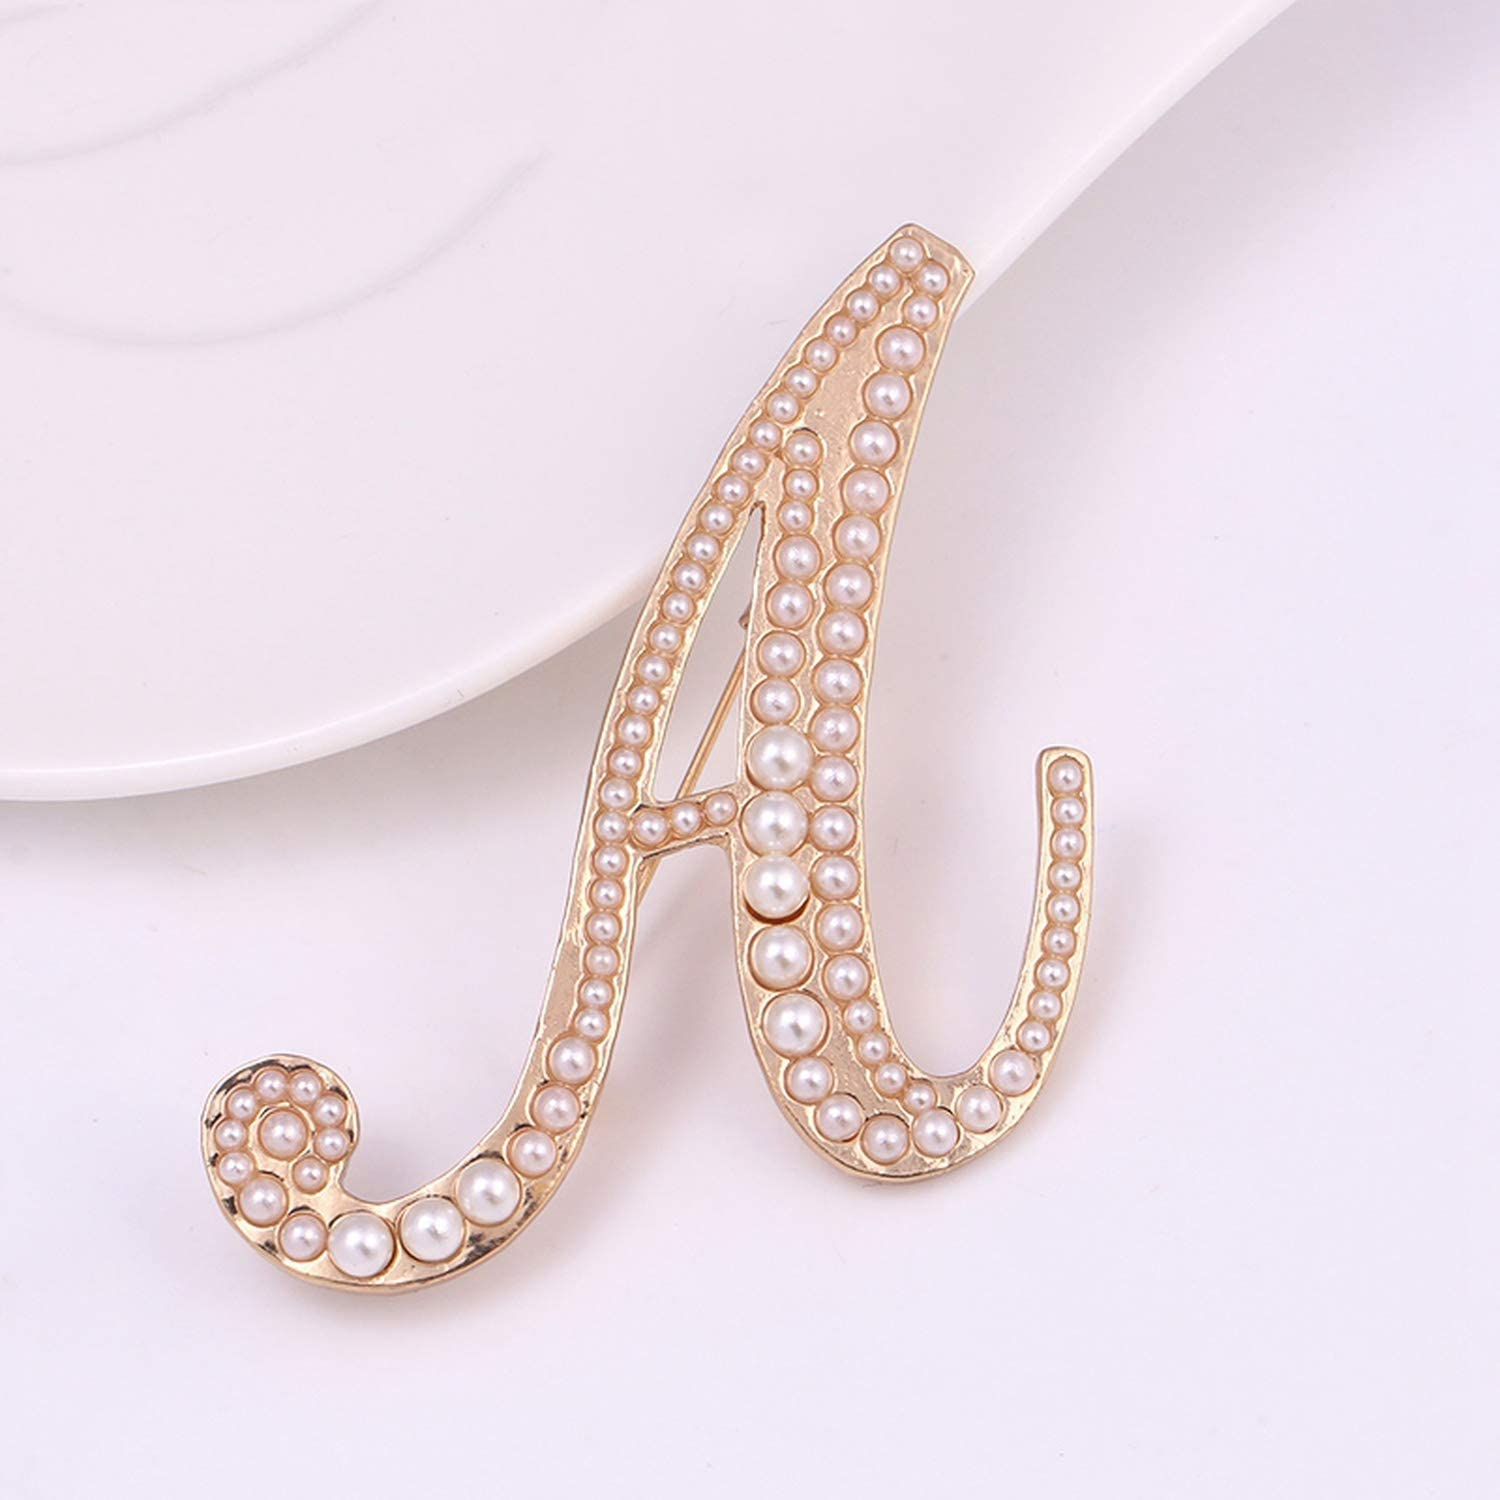 myeuphoria Brooch Pins-Simulated Pearl Letter A Brooch Pins Gold Color Plated